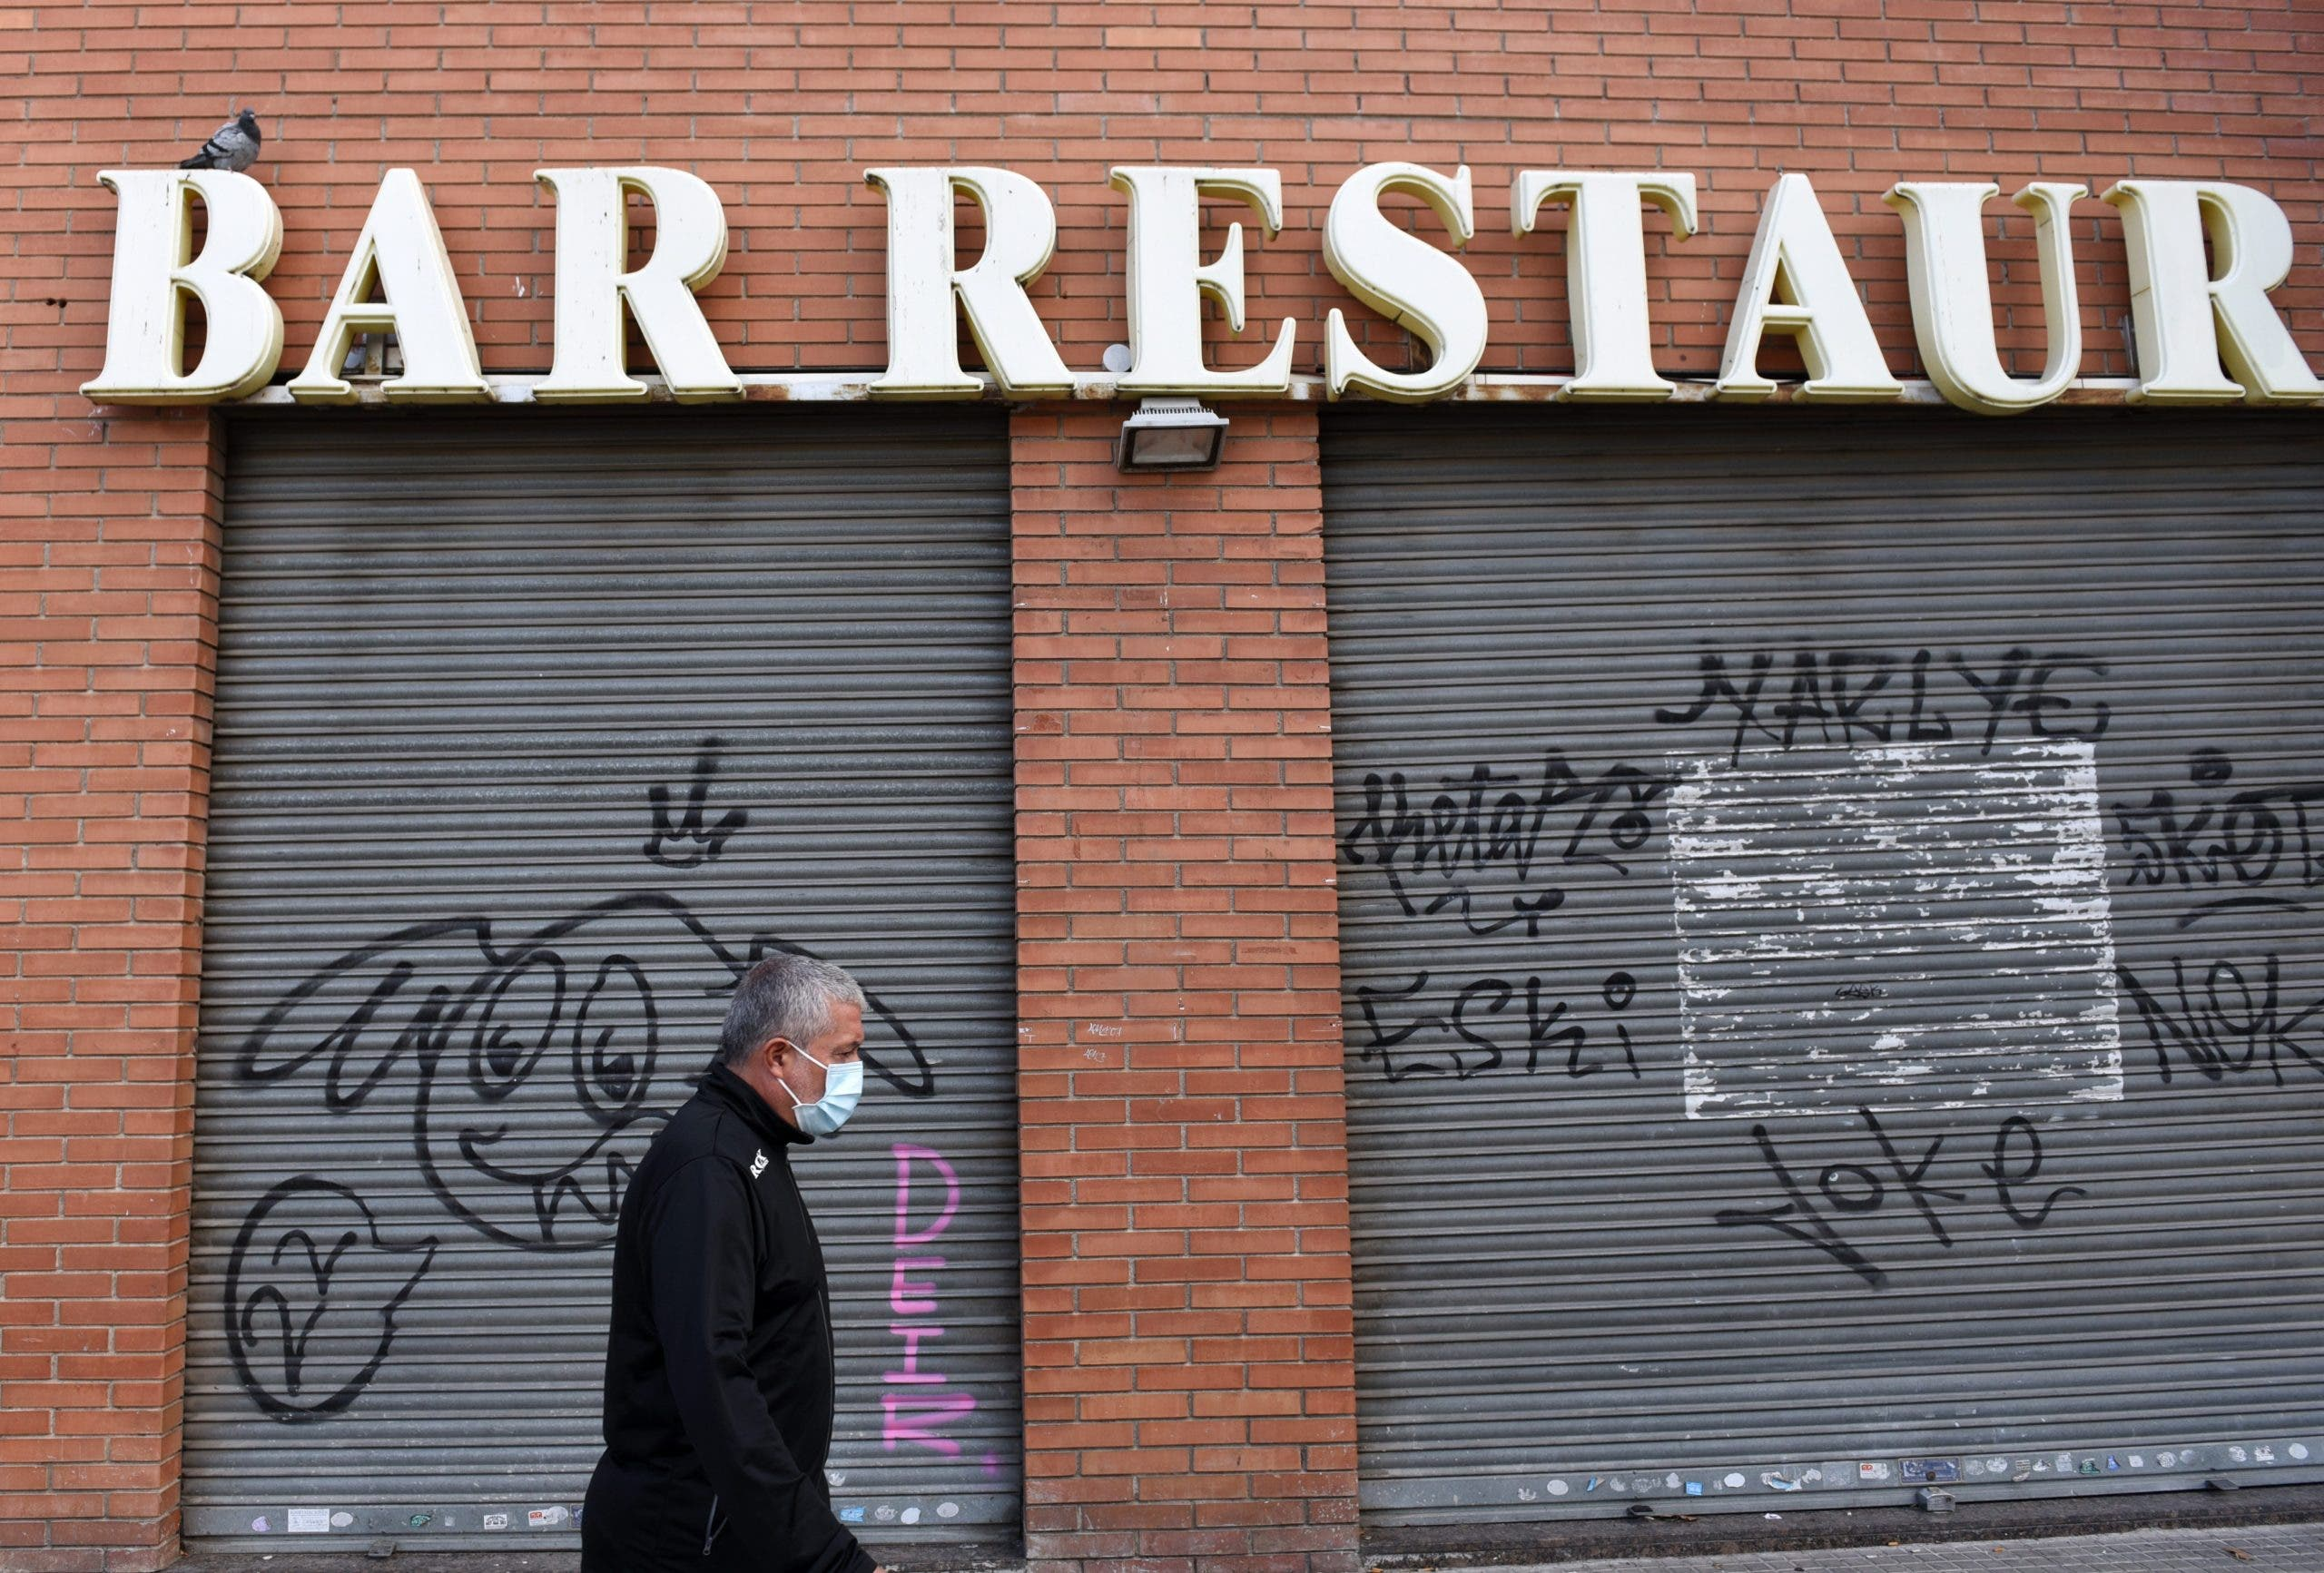 Bars And Restaurants Close Due To Covid 19 Crisis In Barcelona, Spain